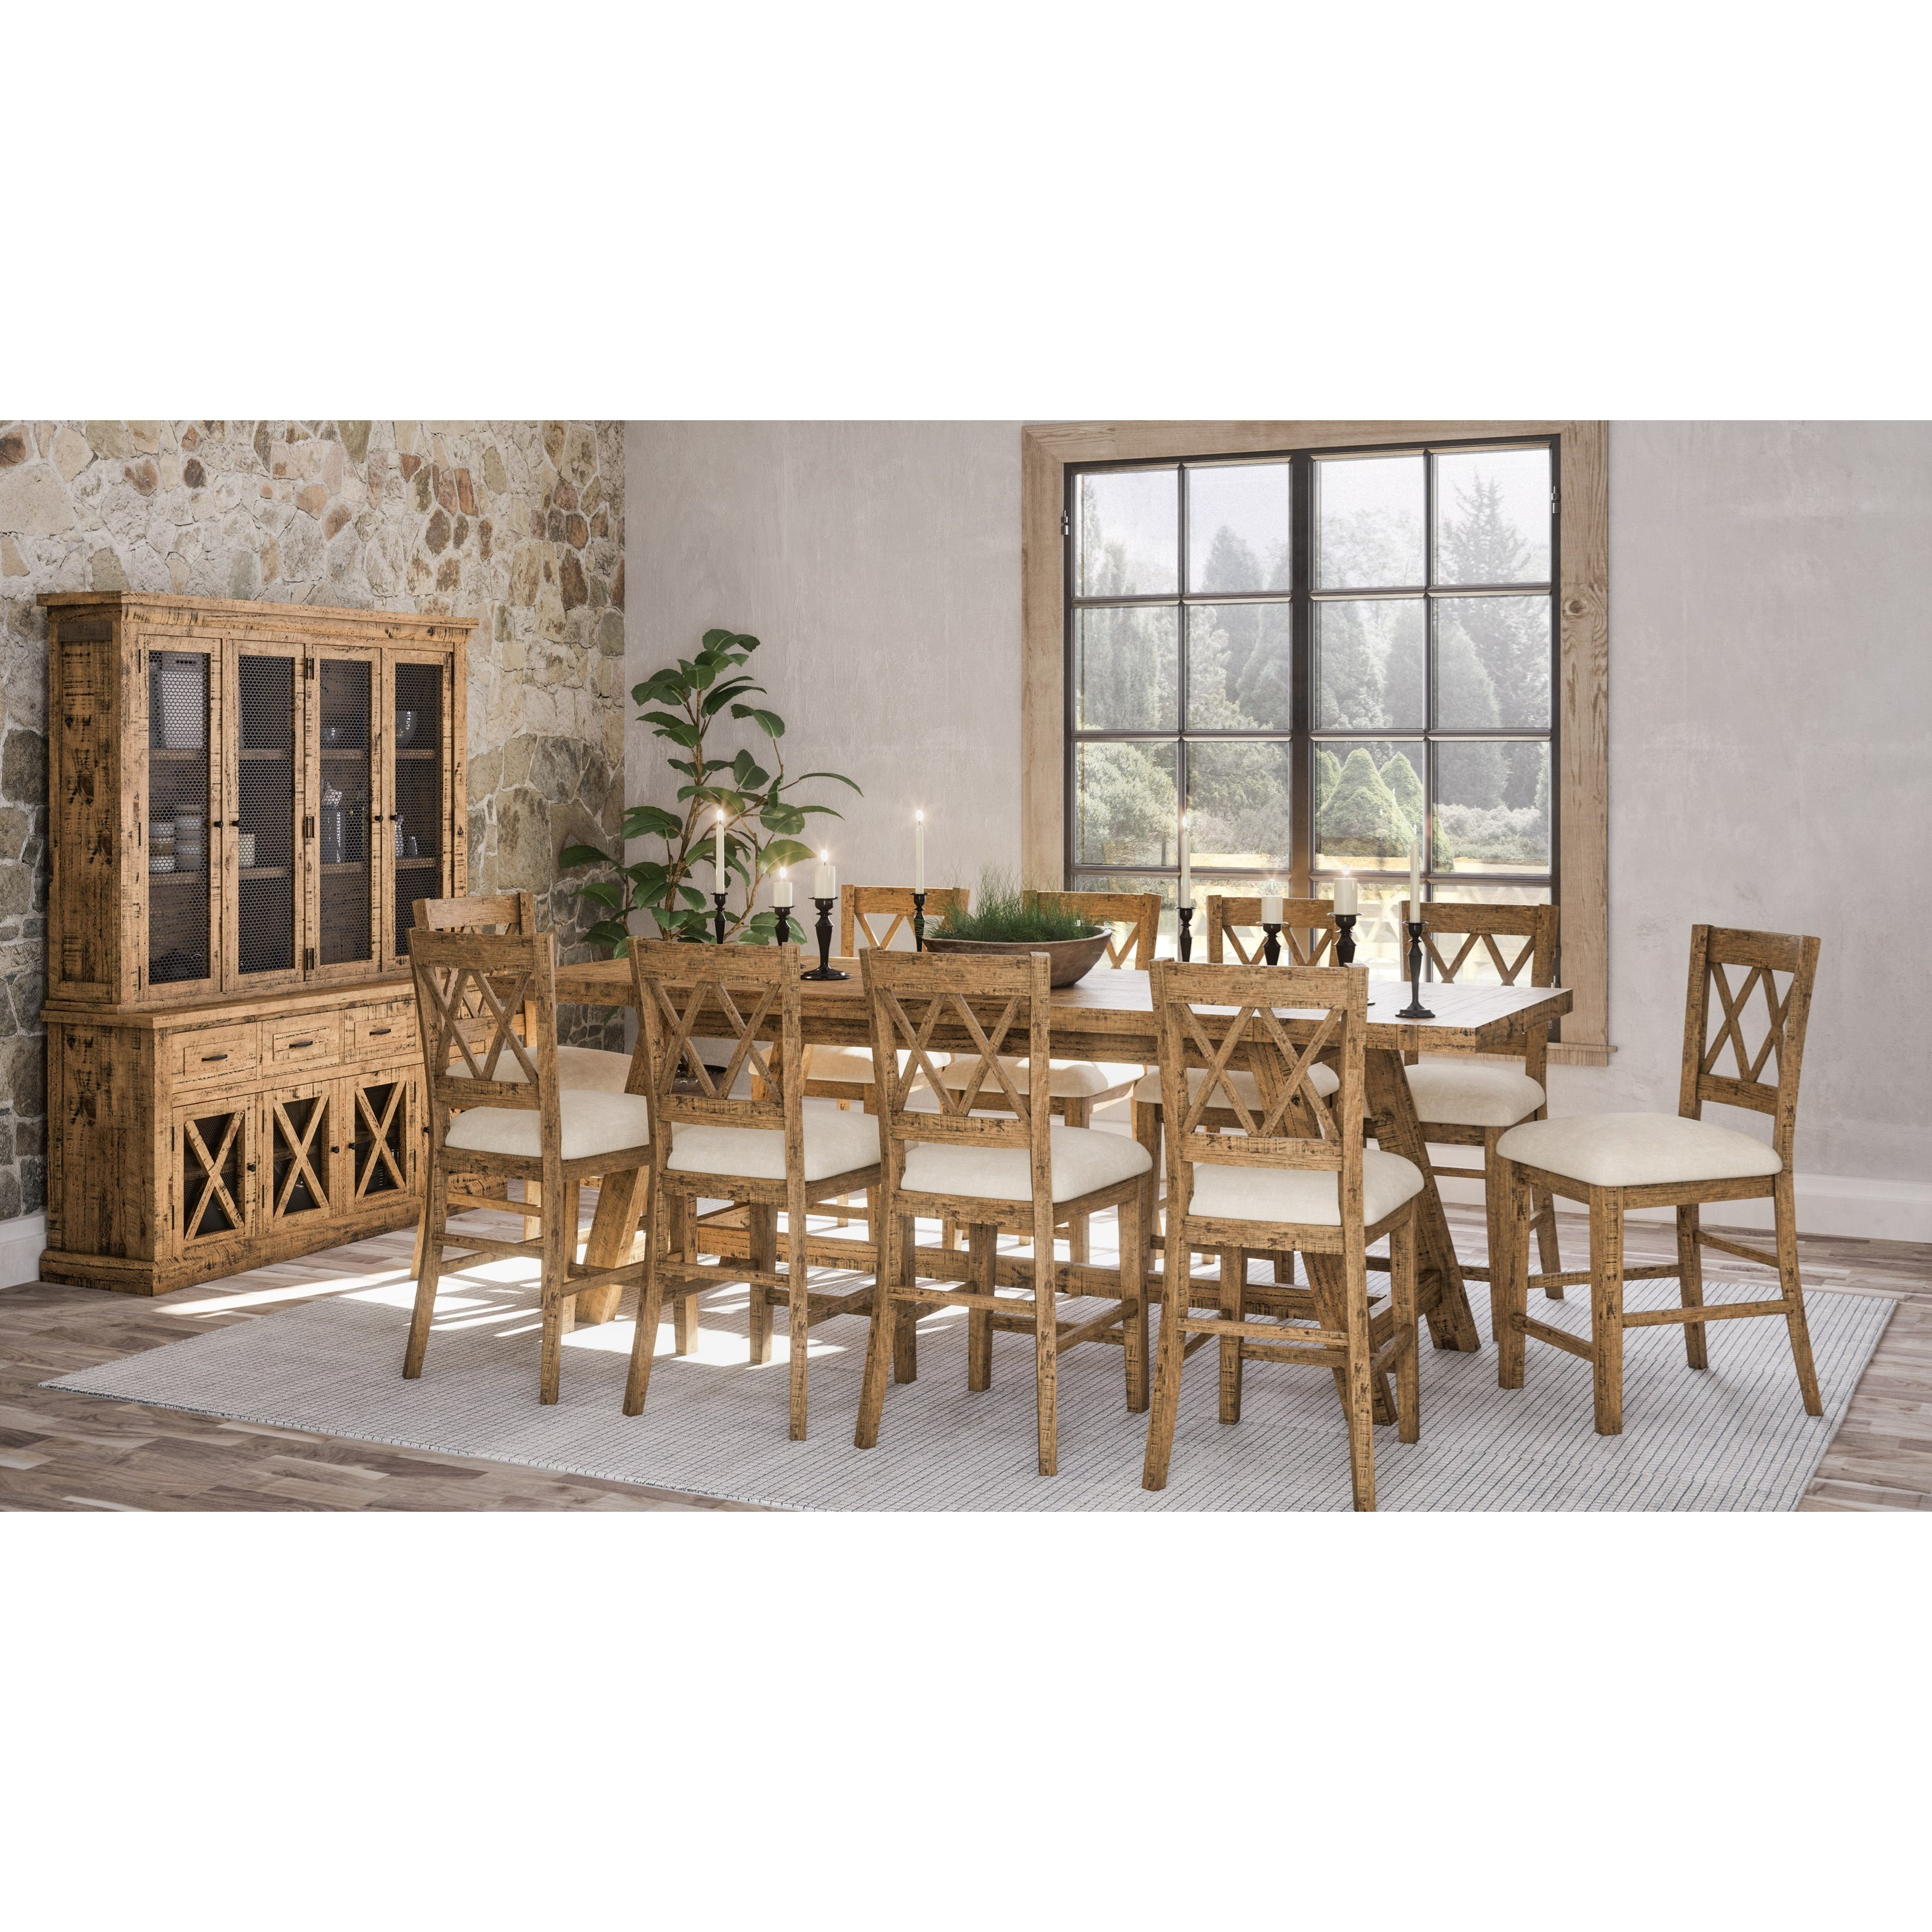 Telluride  11-Piece Counter Height Table and Chair Set by Jofran at Jofran